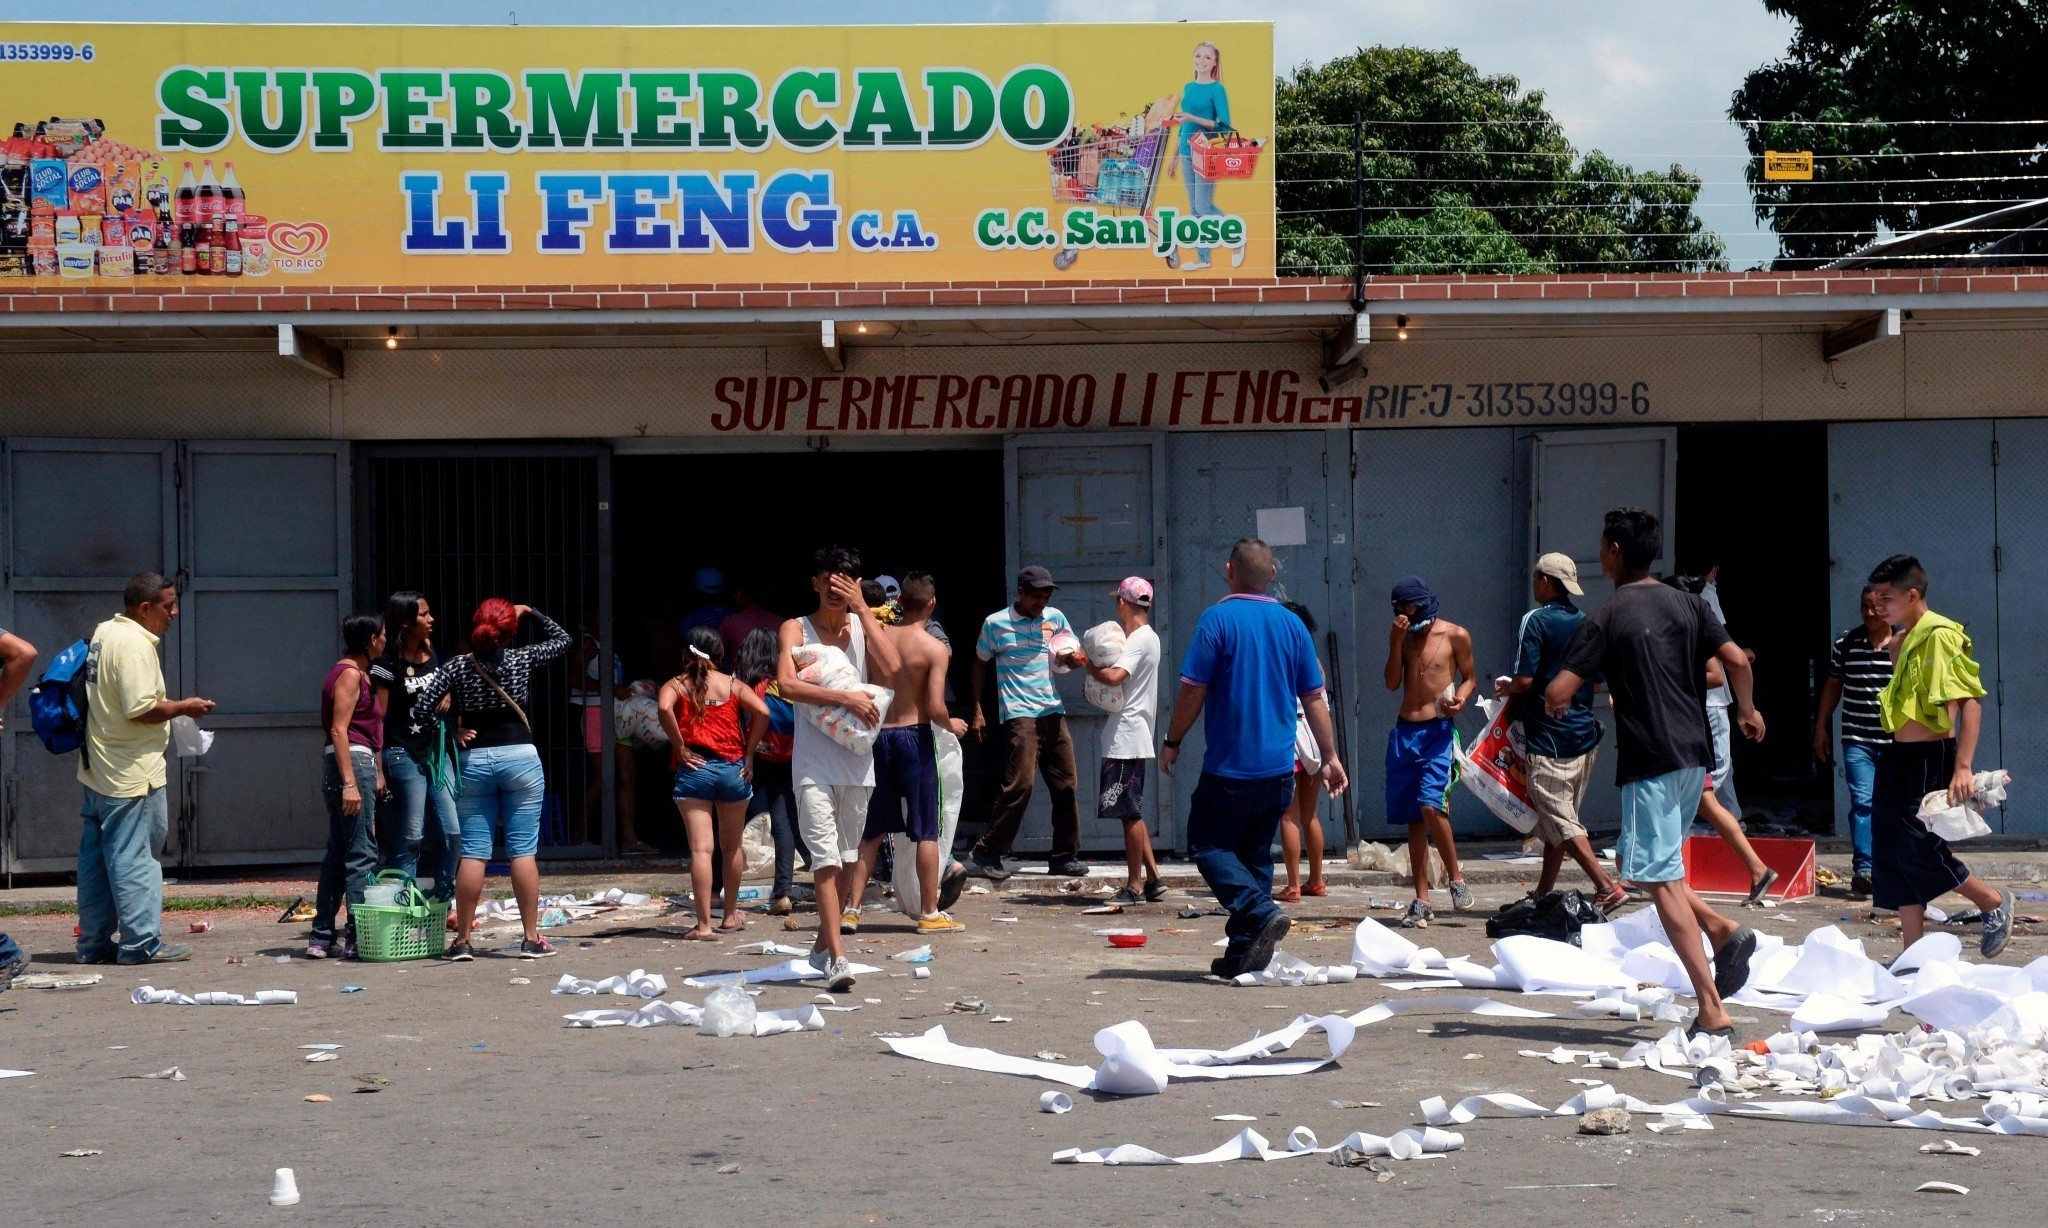 Hunger eats away at Venezuela's soul as its people struggle to survive